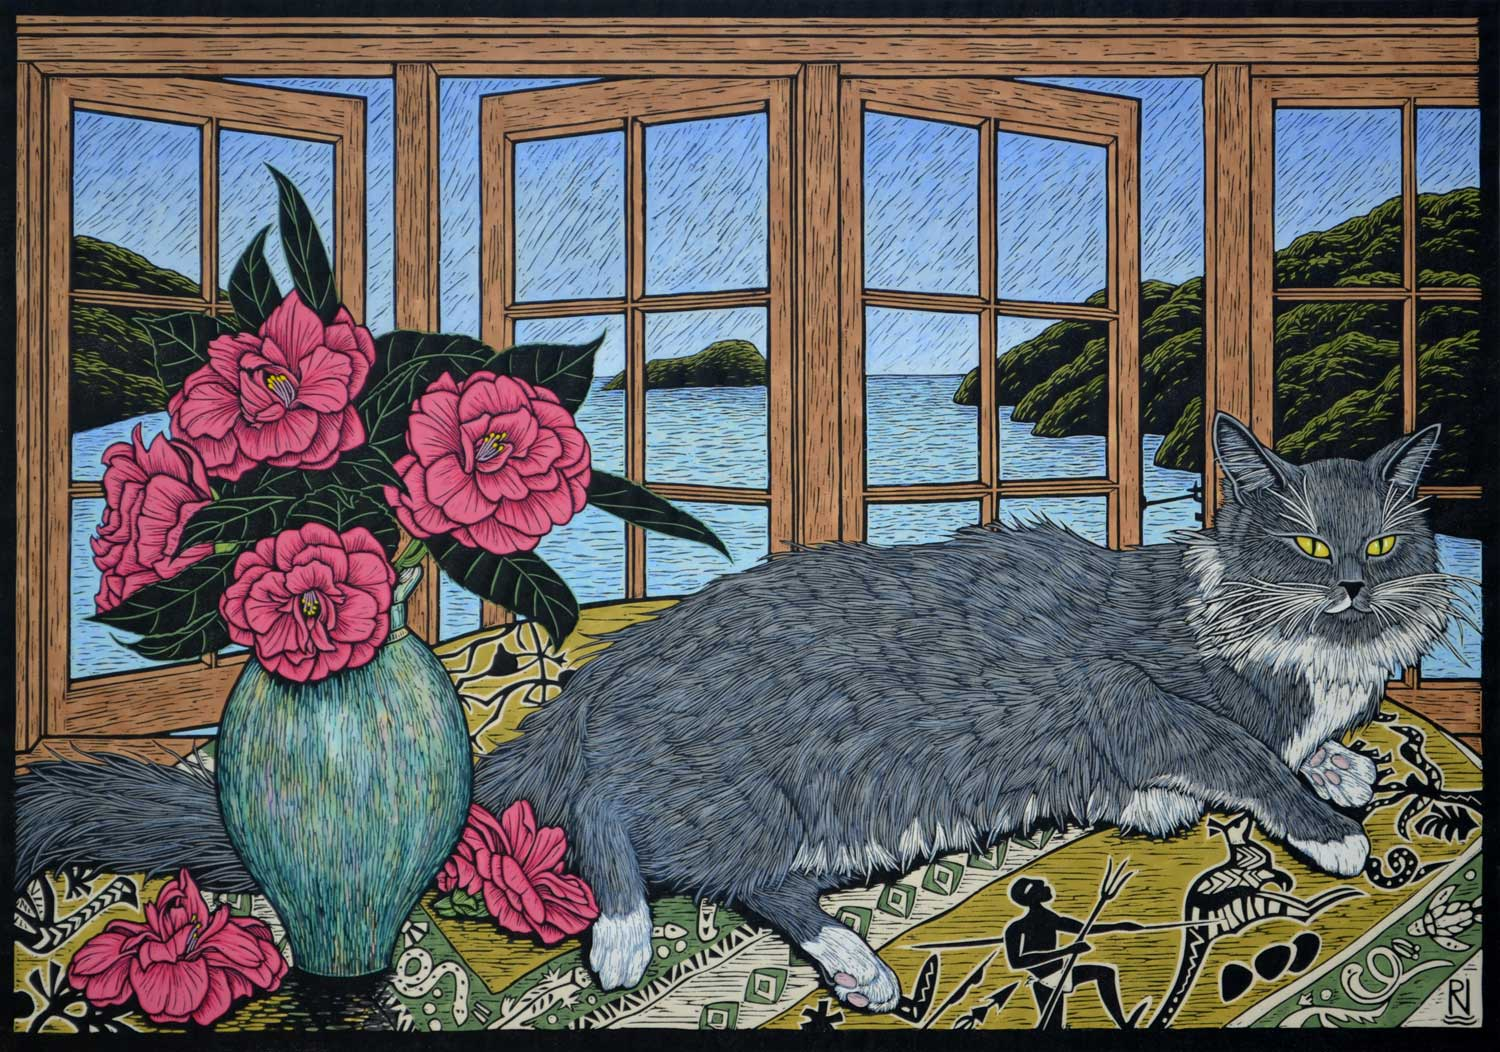 STILL LIFE WITH SQUIRREL  52 X 74.5 CM EDITION OF 50  HAND COLOURED LINOCUT ON HANDMADE JAPANESE PAPER  $1,700